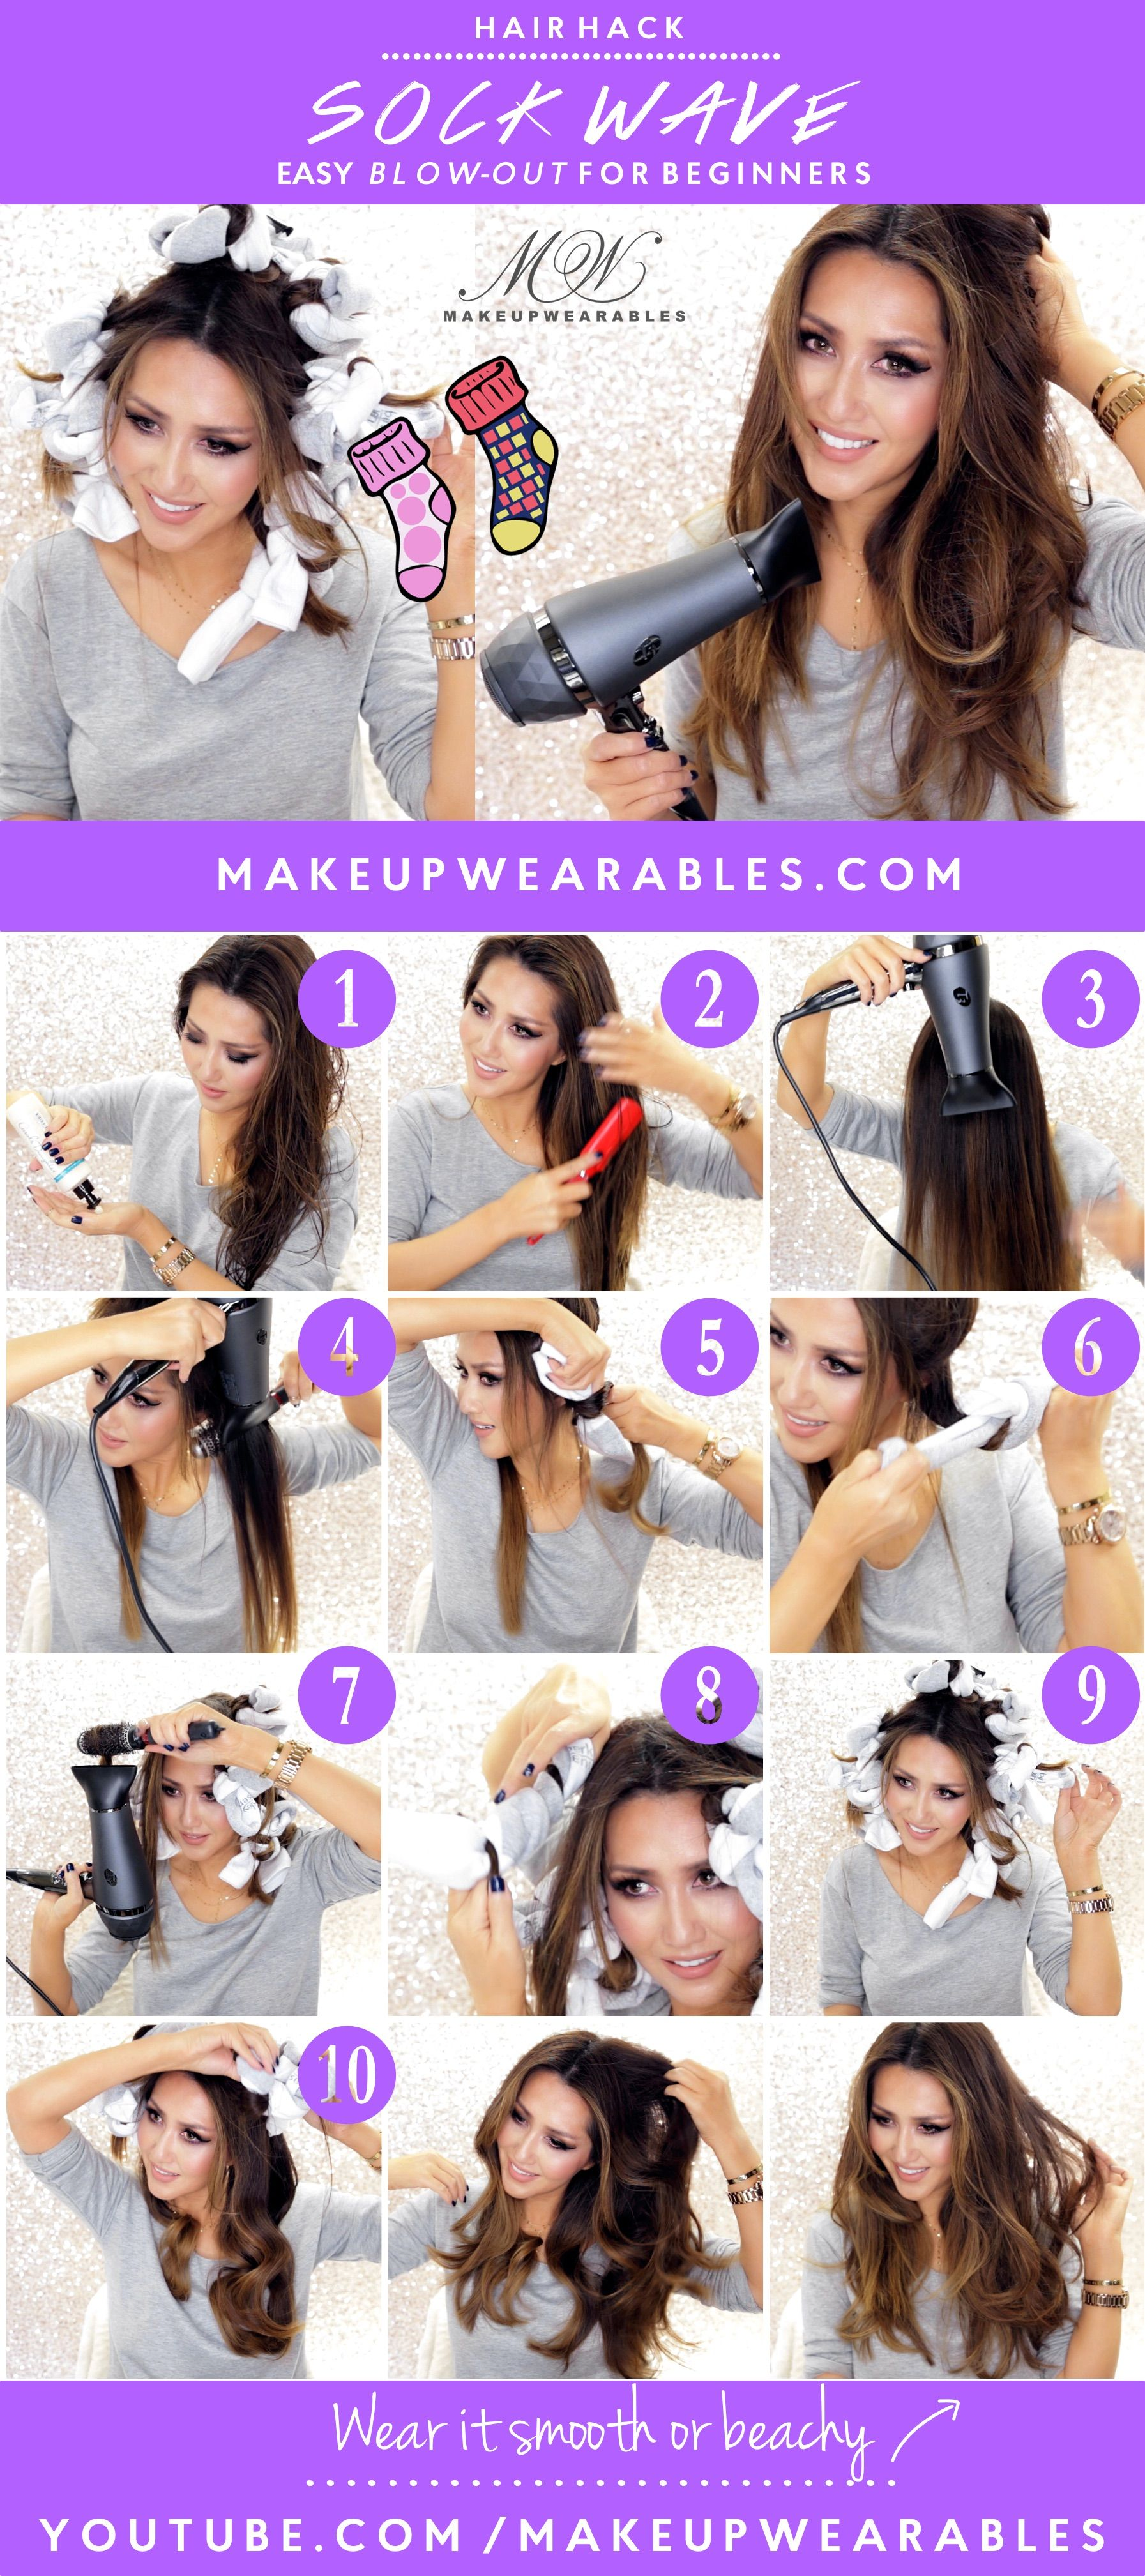 Hair Hack Kylie Jenner Waves With An Easy Sock Blow Out How To Curl Your Hair Hair Hacks Curled Hairstyles